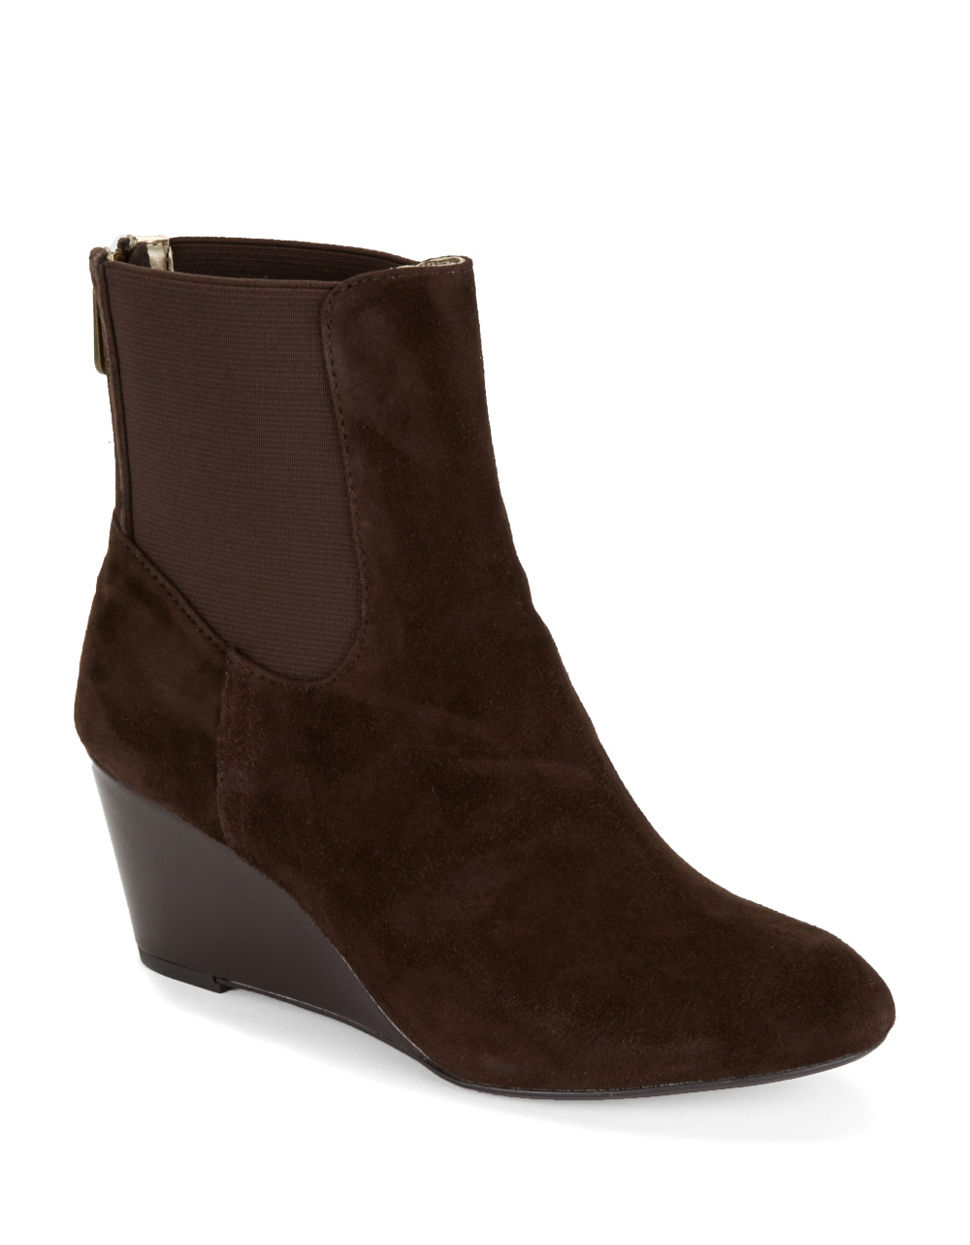 adrienne vittadini karol wedge ankle boots in brown